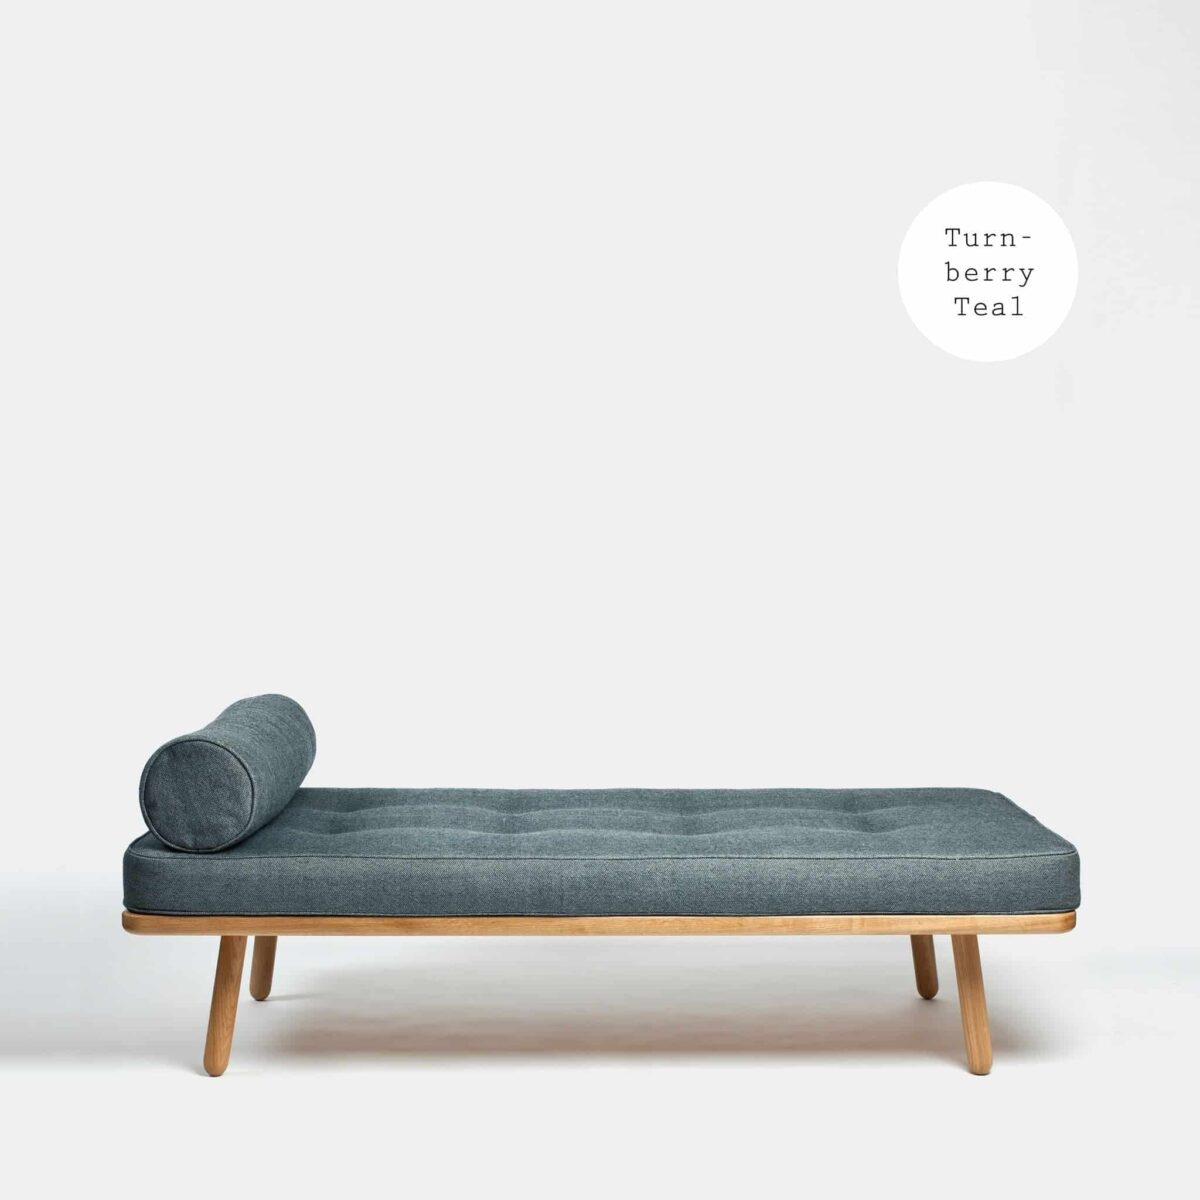 another-country-day-bed-one-oak-natural–mattress-1-bolster-turnberry-teal-001